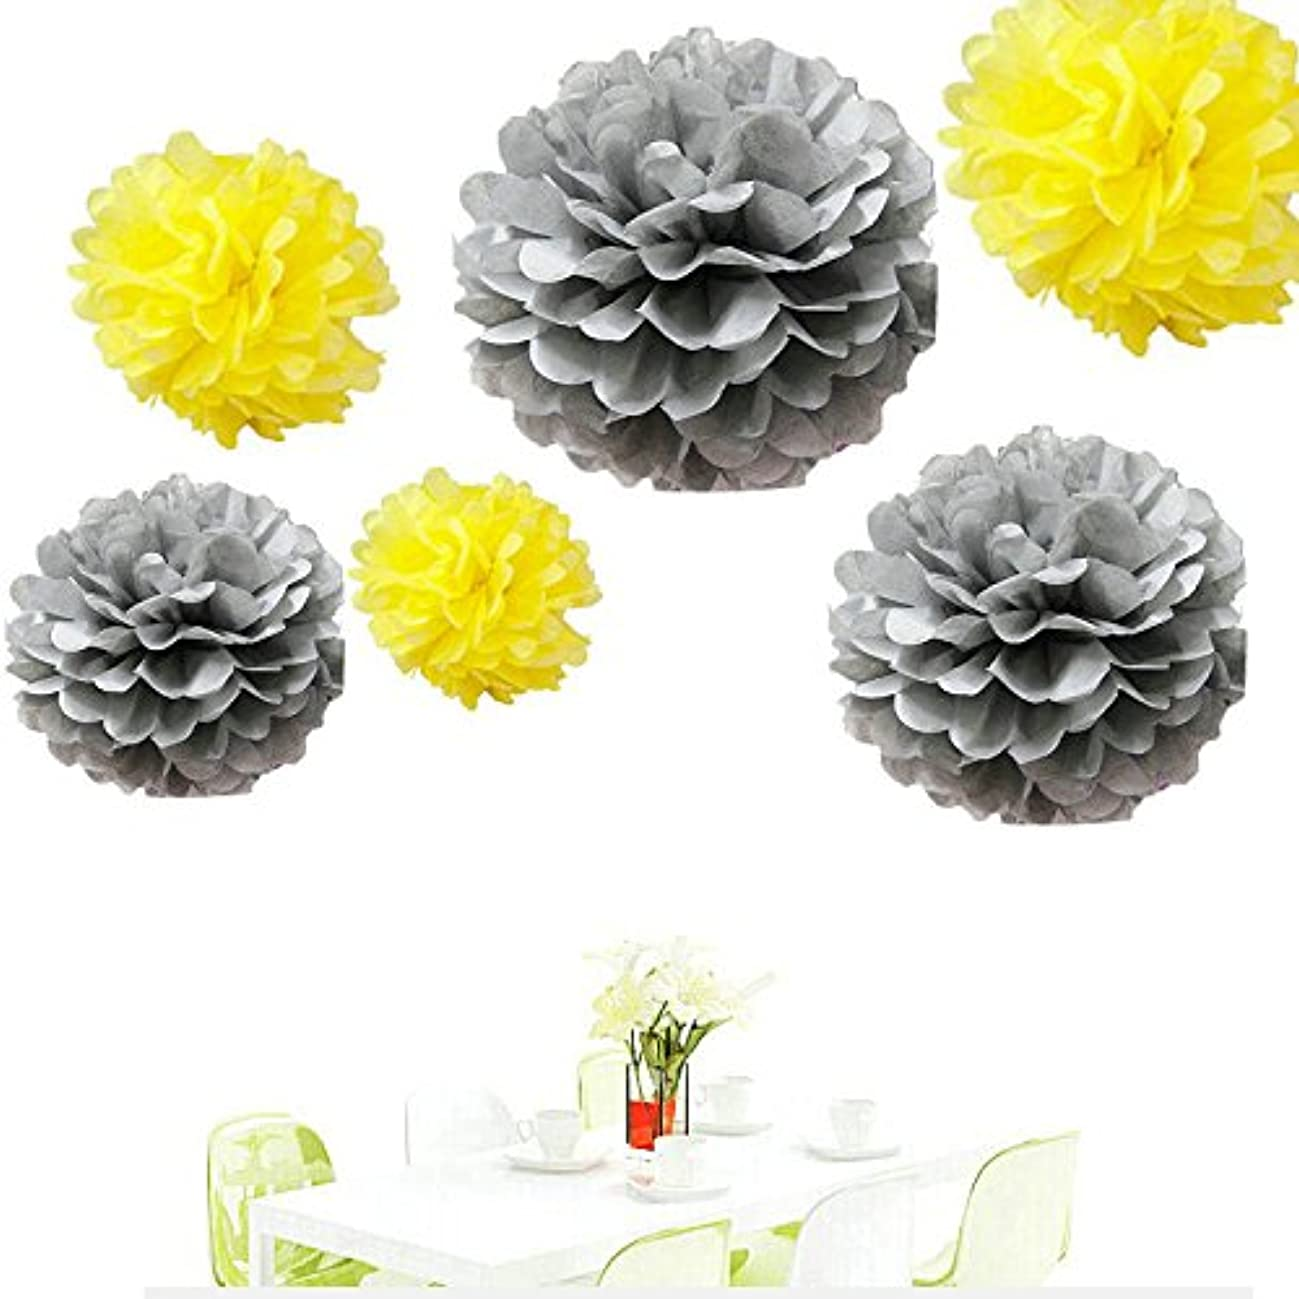 Since ? 12pcs Mixed Sizes Silver and Yellow Tissue Paper Pom Pom Pompoms Wedding Birthday Party Decorations Kids Holiday Supplies